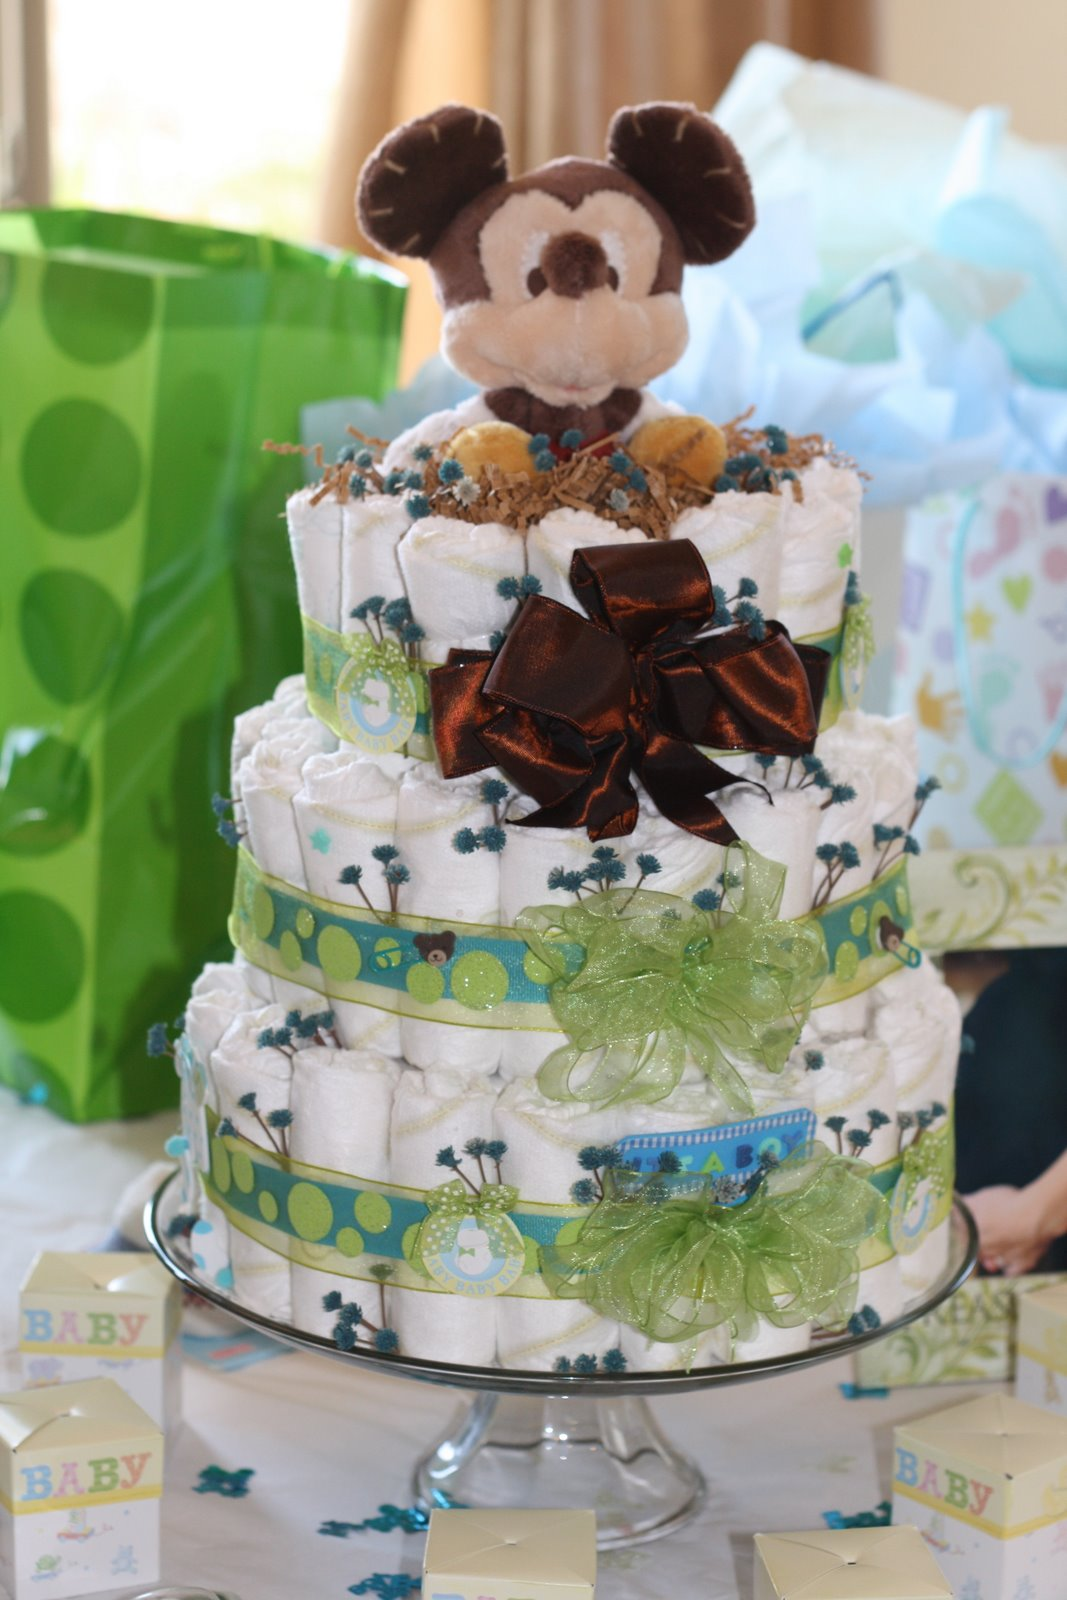 The Project Table: Baby Boy Diaper Cakes